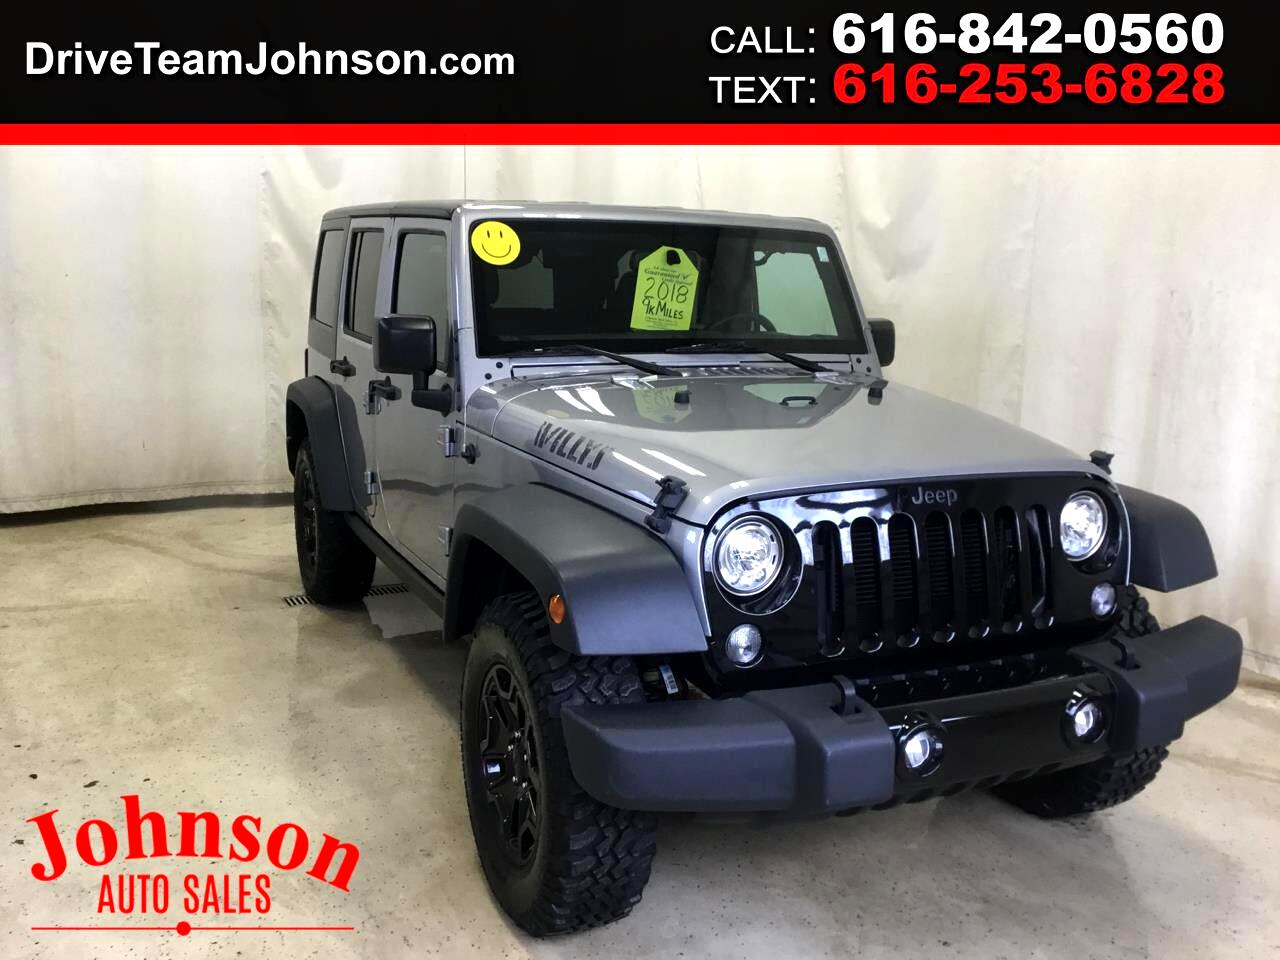 Jeep Wrangler JK Unlimited Willys Wheeler W 4x4 2018